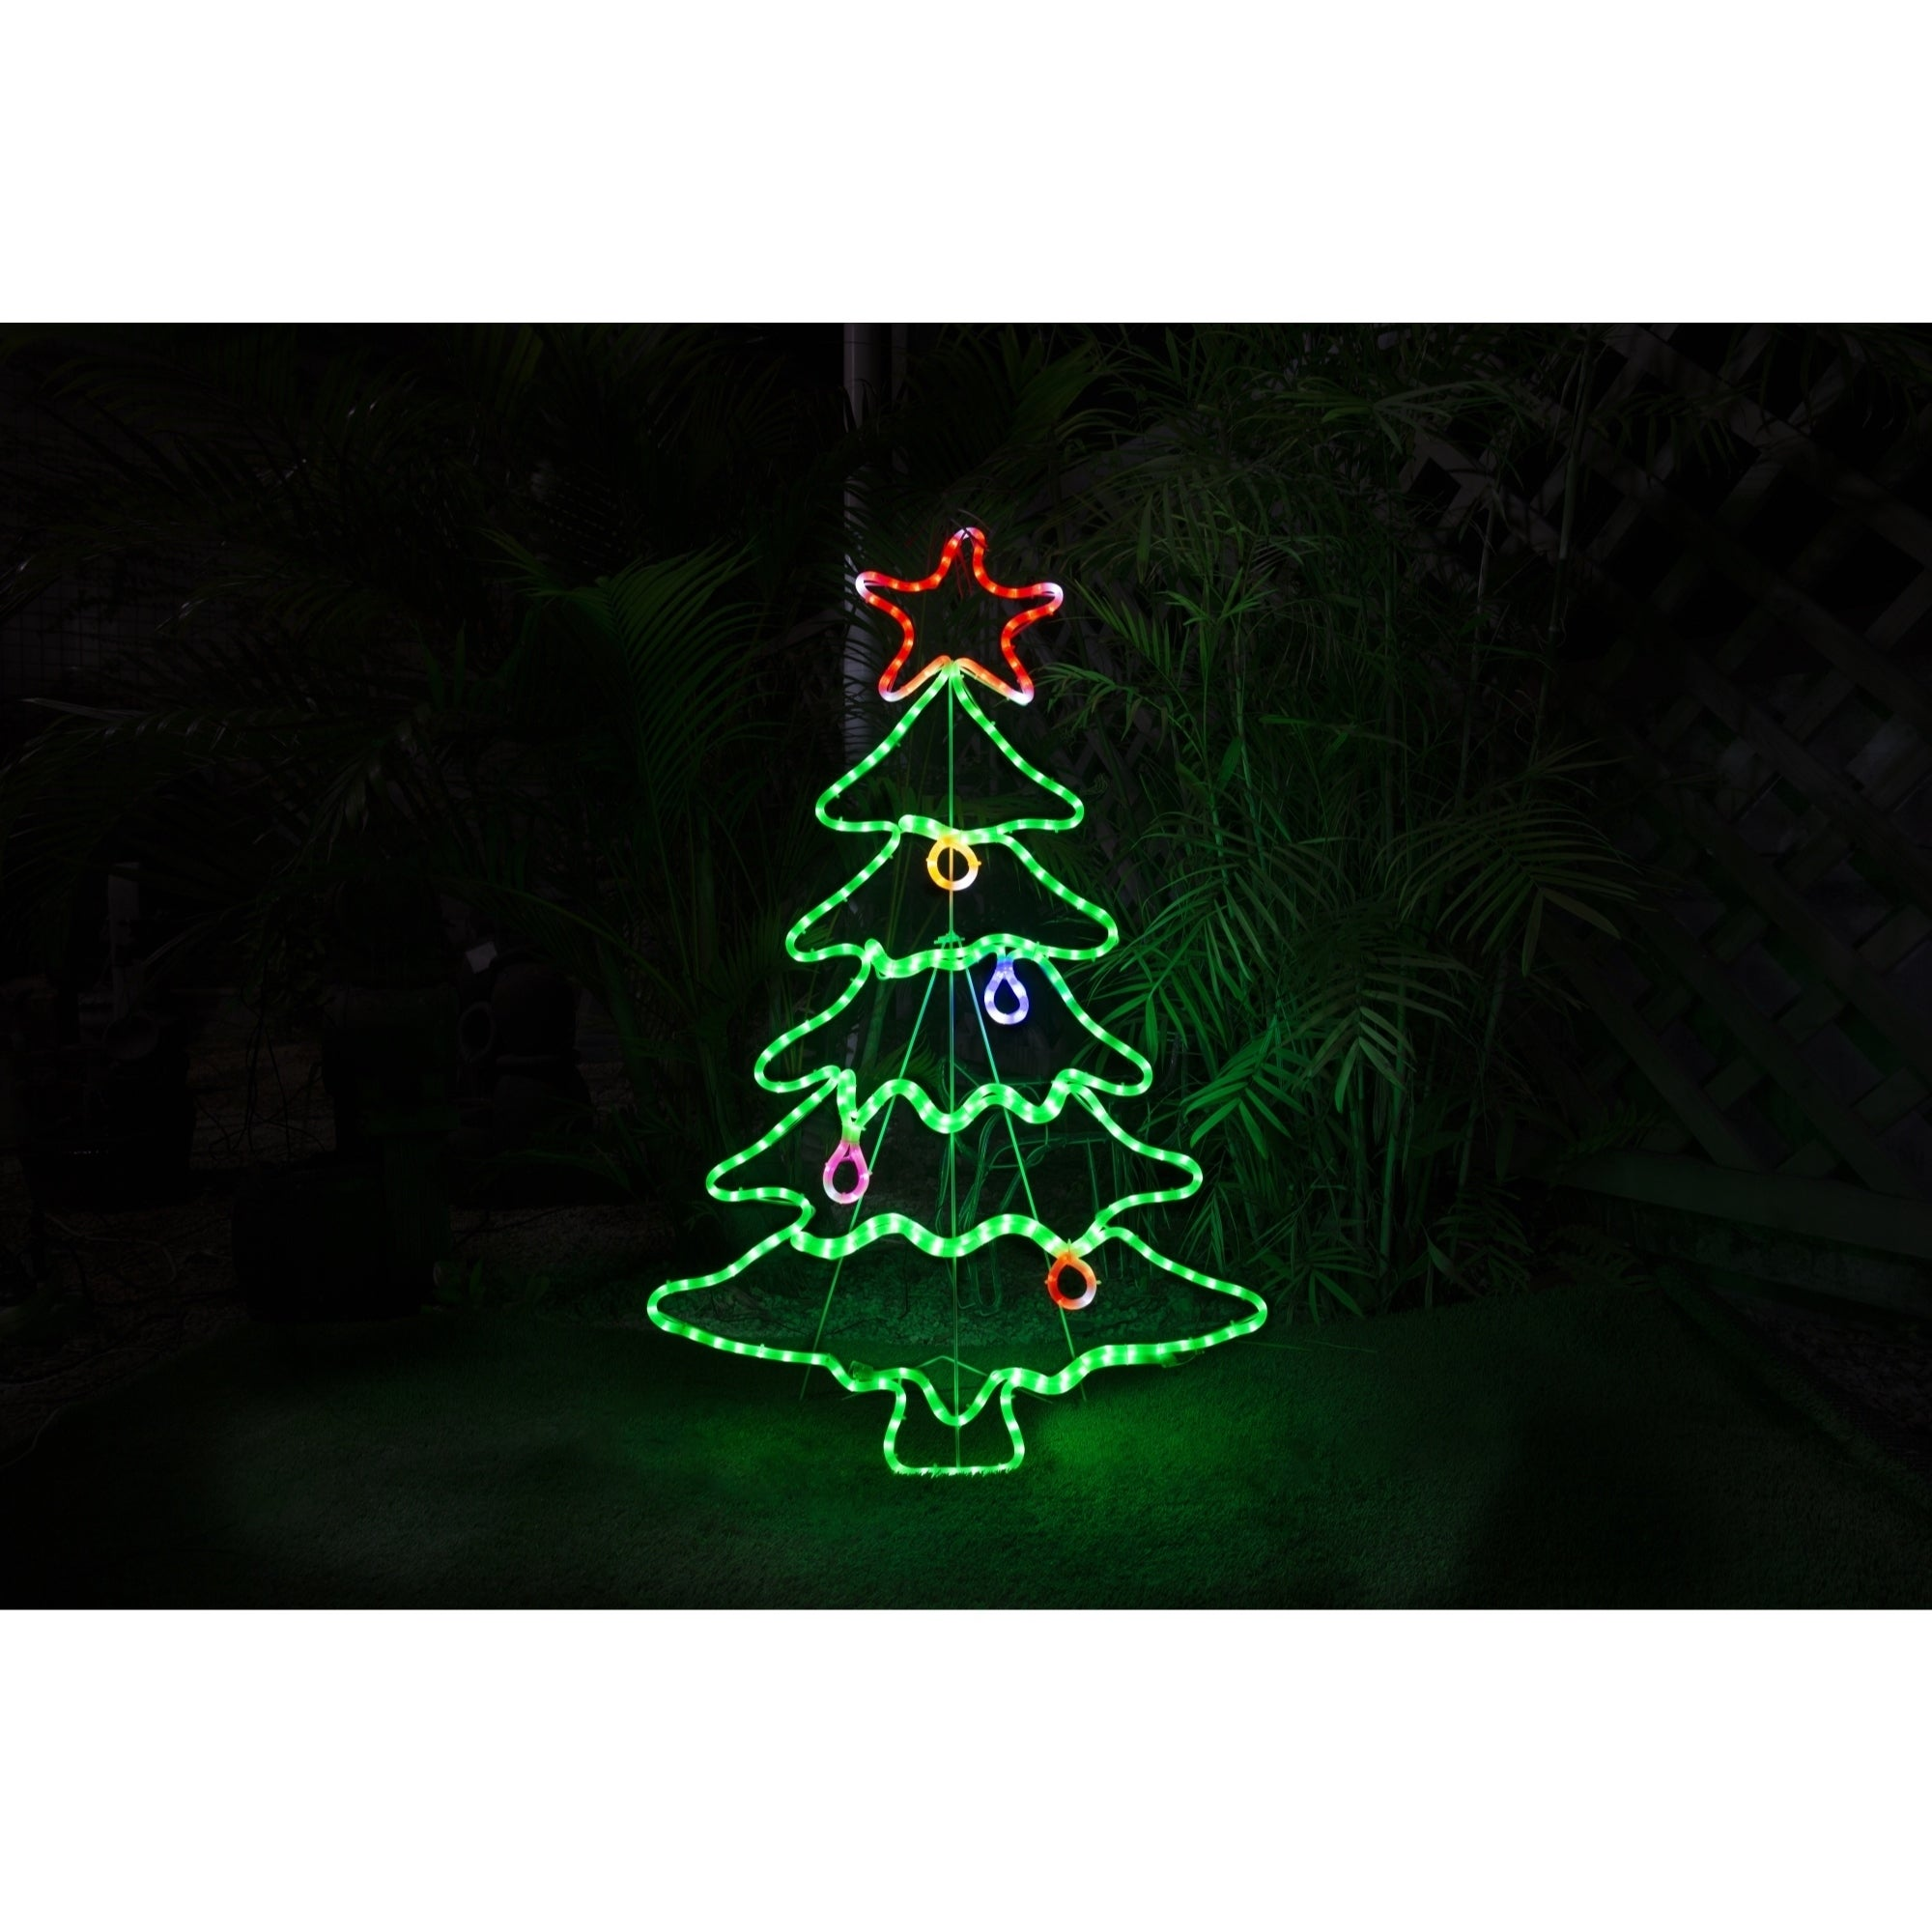 45in LED Rope Light Tree Christmas Decoration